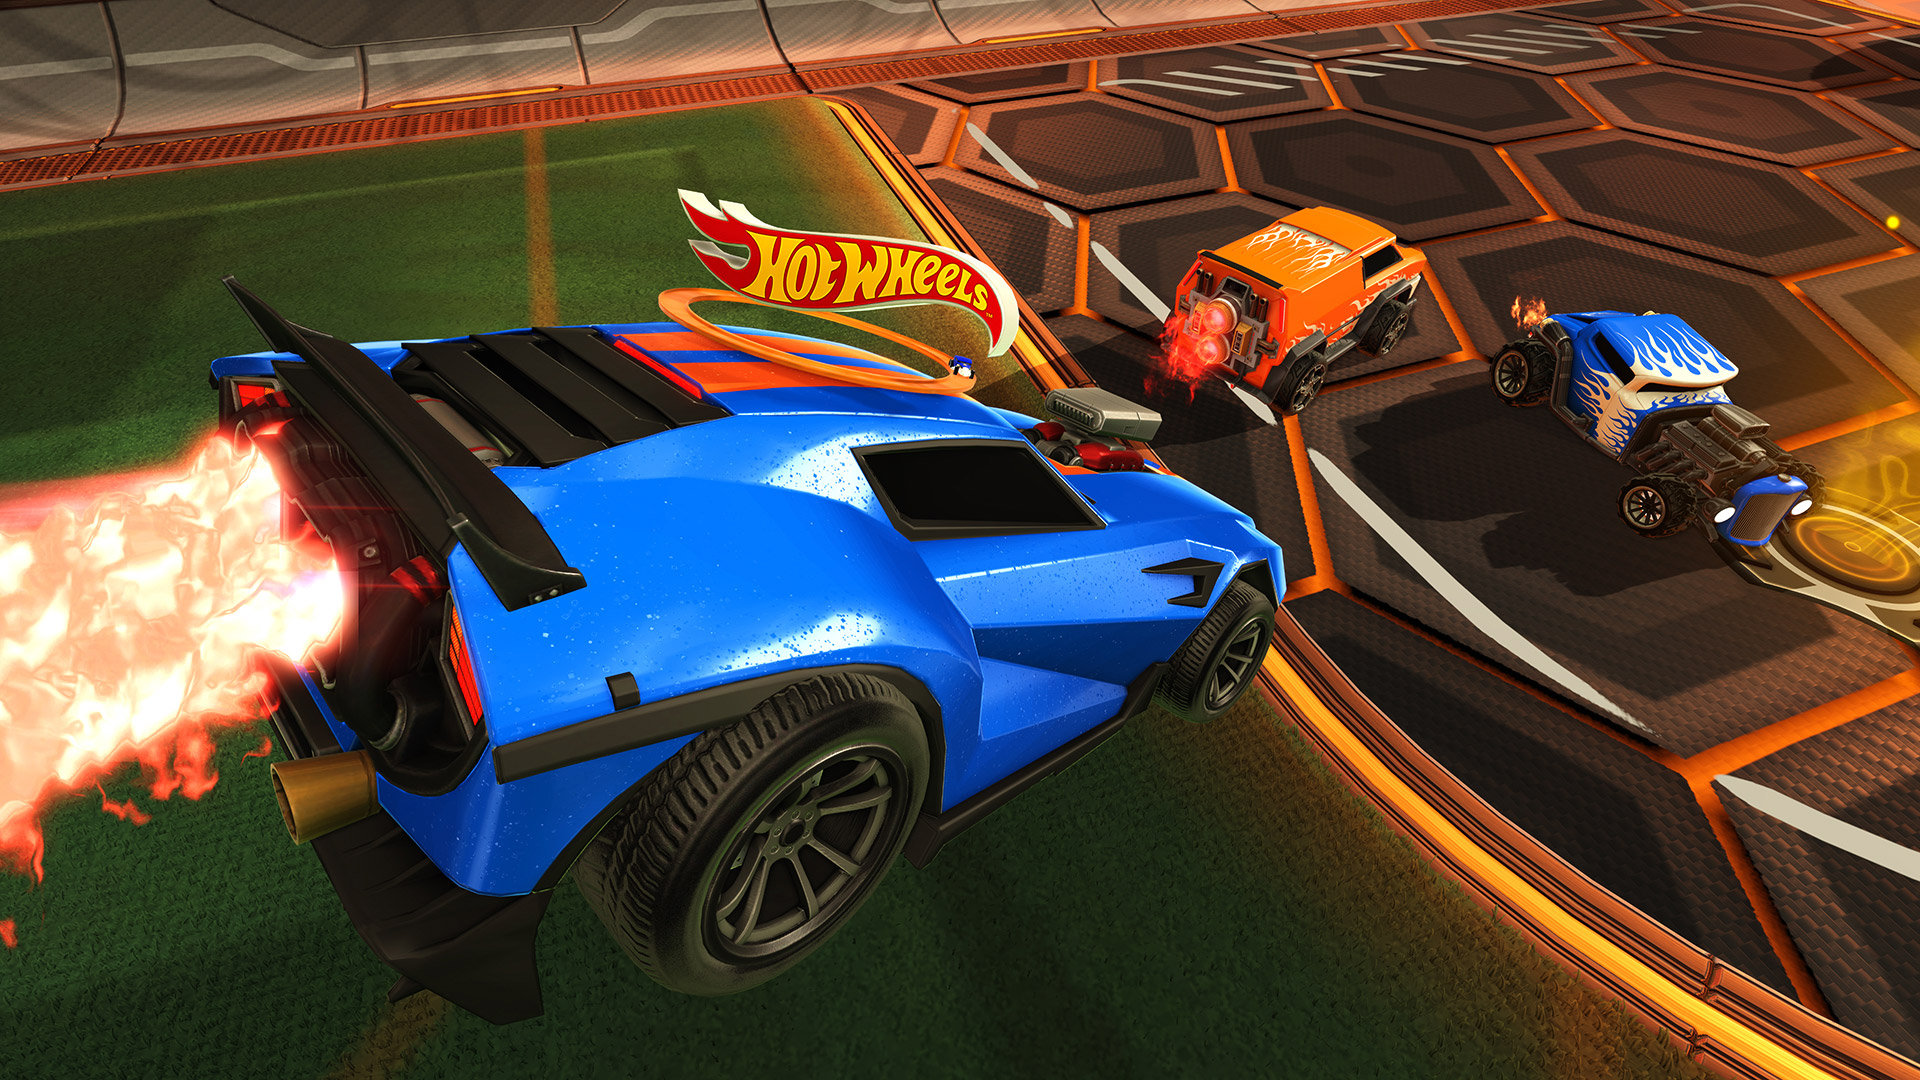 Rocket League getting Hot Wheels cars   Polygon 1 of 6